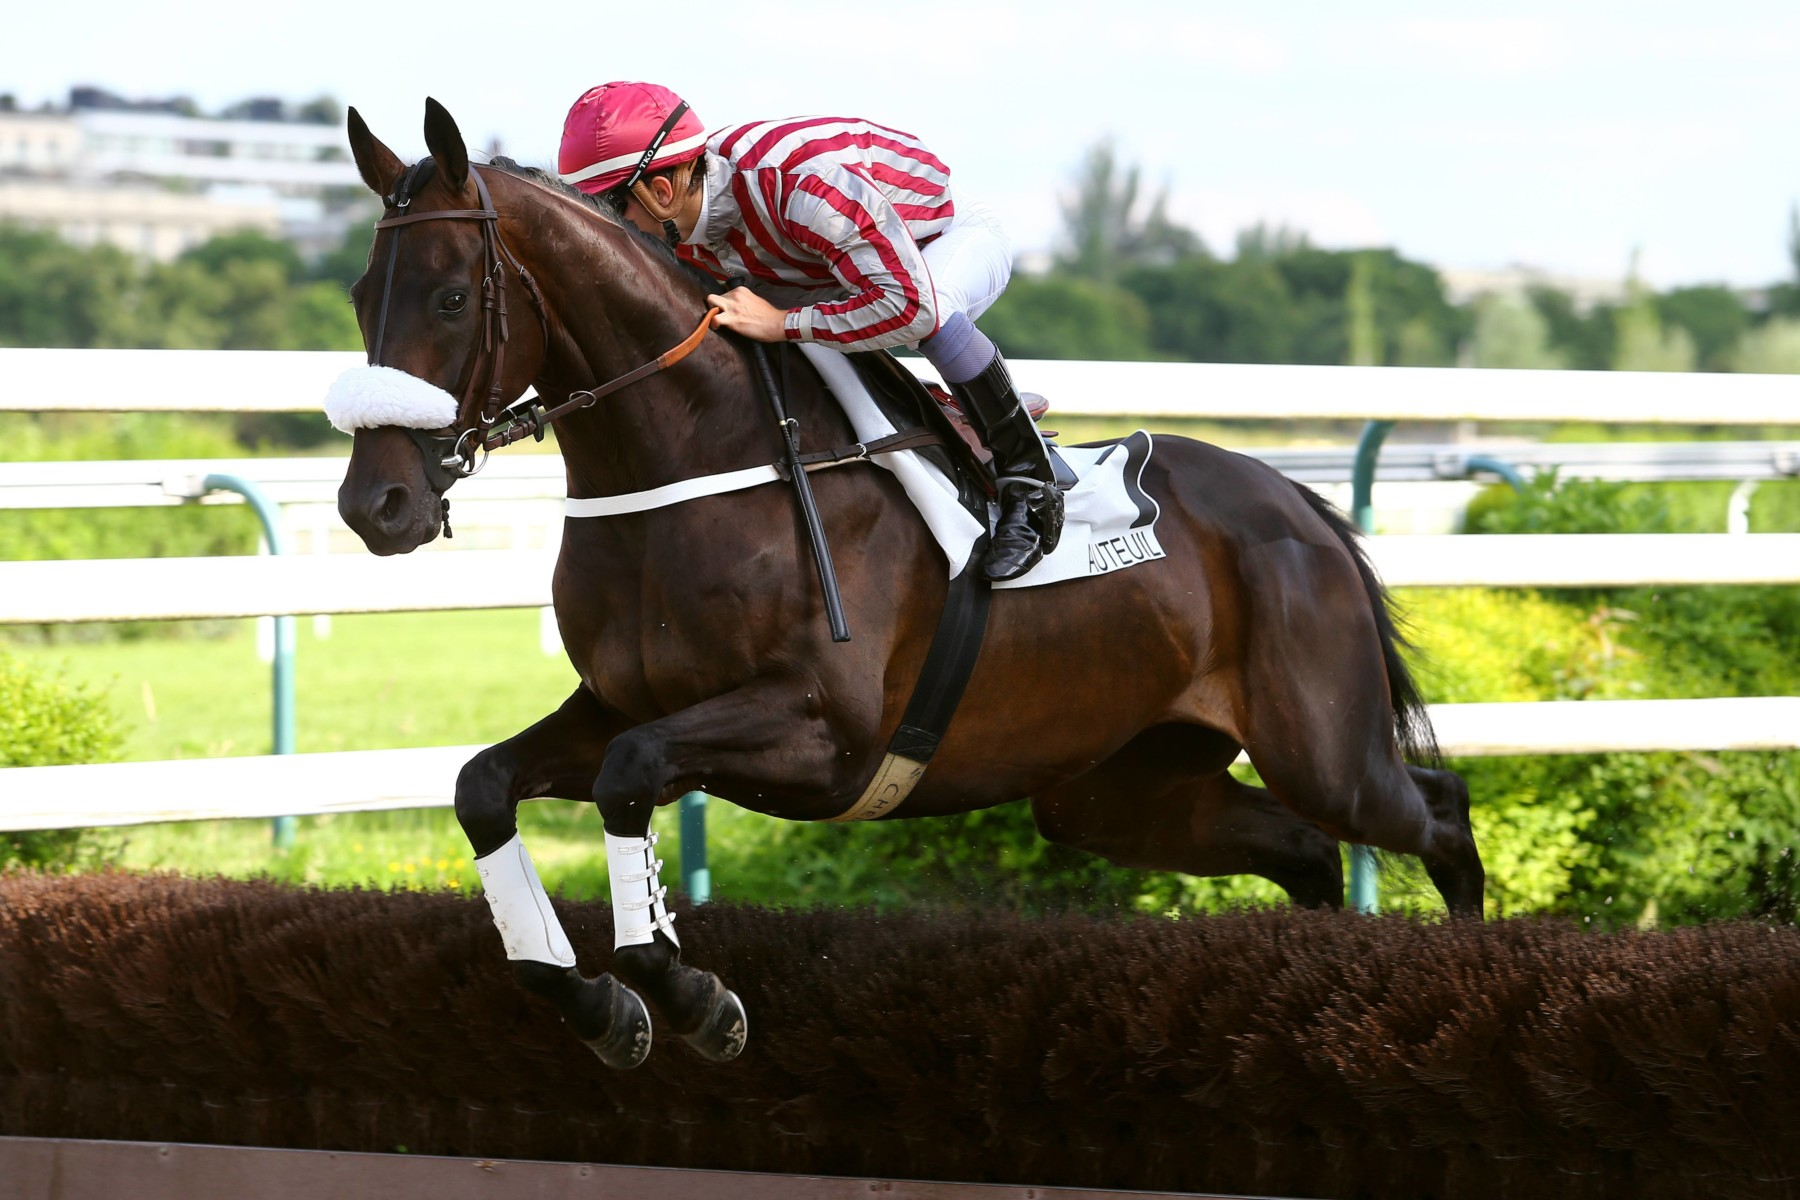 LE STEEPLE-CHASE NATIONAL DES ANGLO-ARABES À AUTEUIL